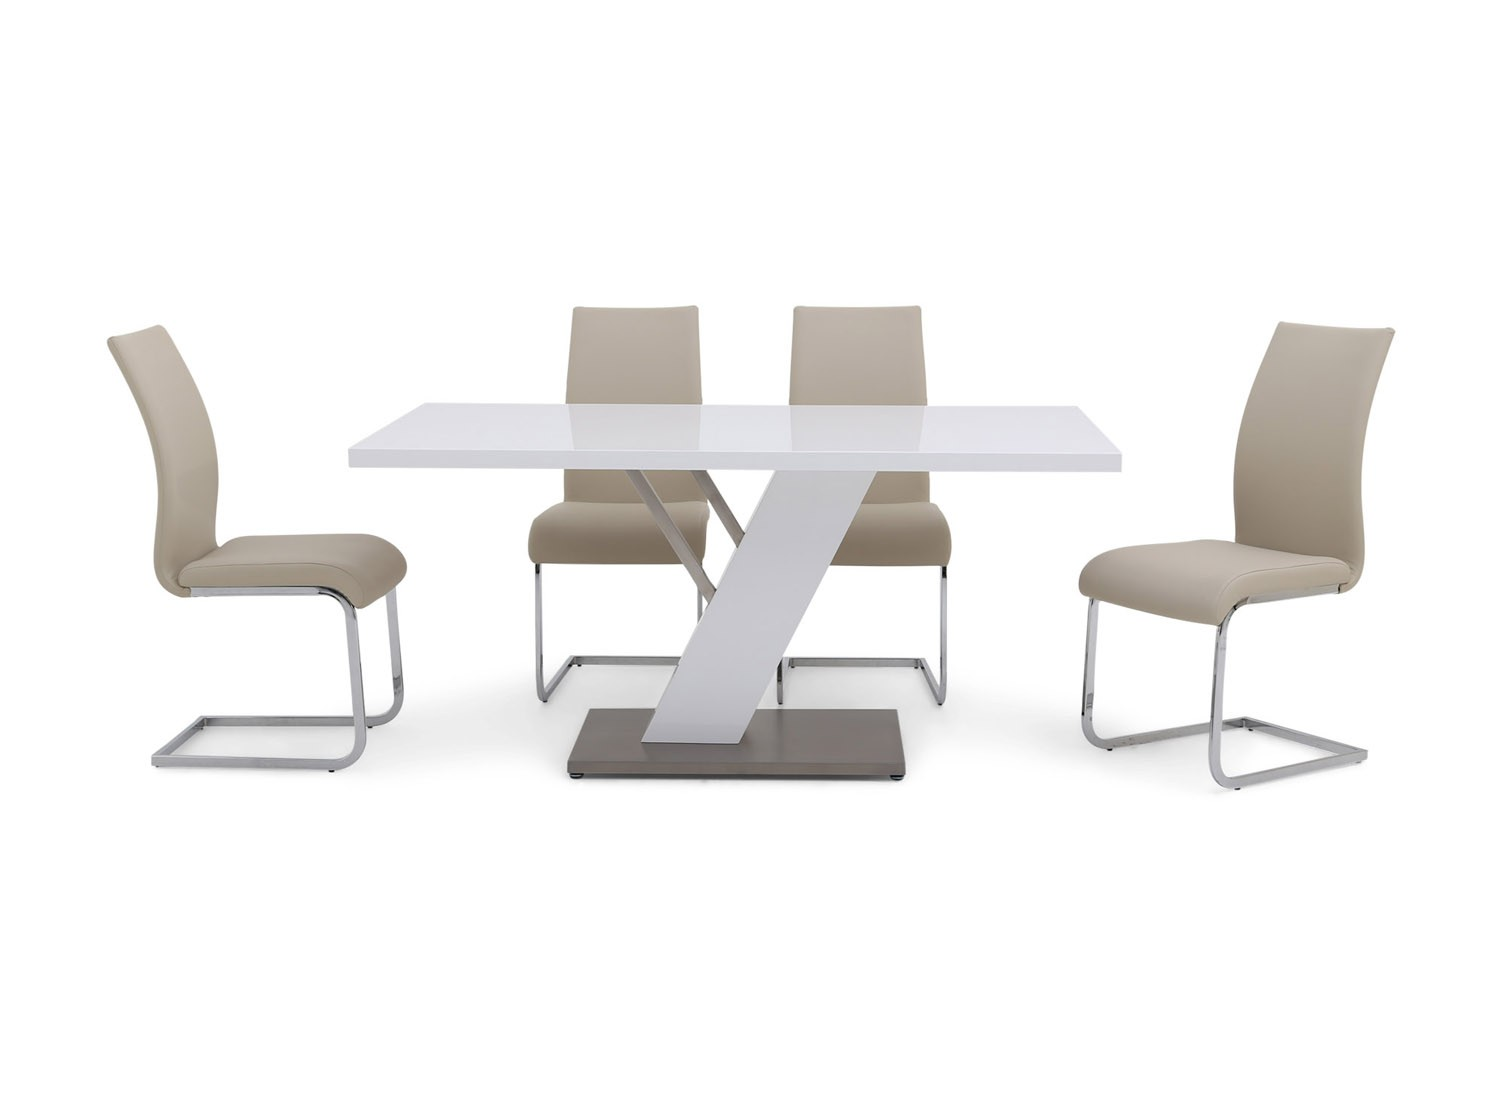 https://www.firstfurniture.co.uk/pub/media/catalog/product/f/a/fairmont_stephano_white_high_gloss_dining_table_6_paolo_black_chairs_2.jpg